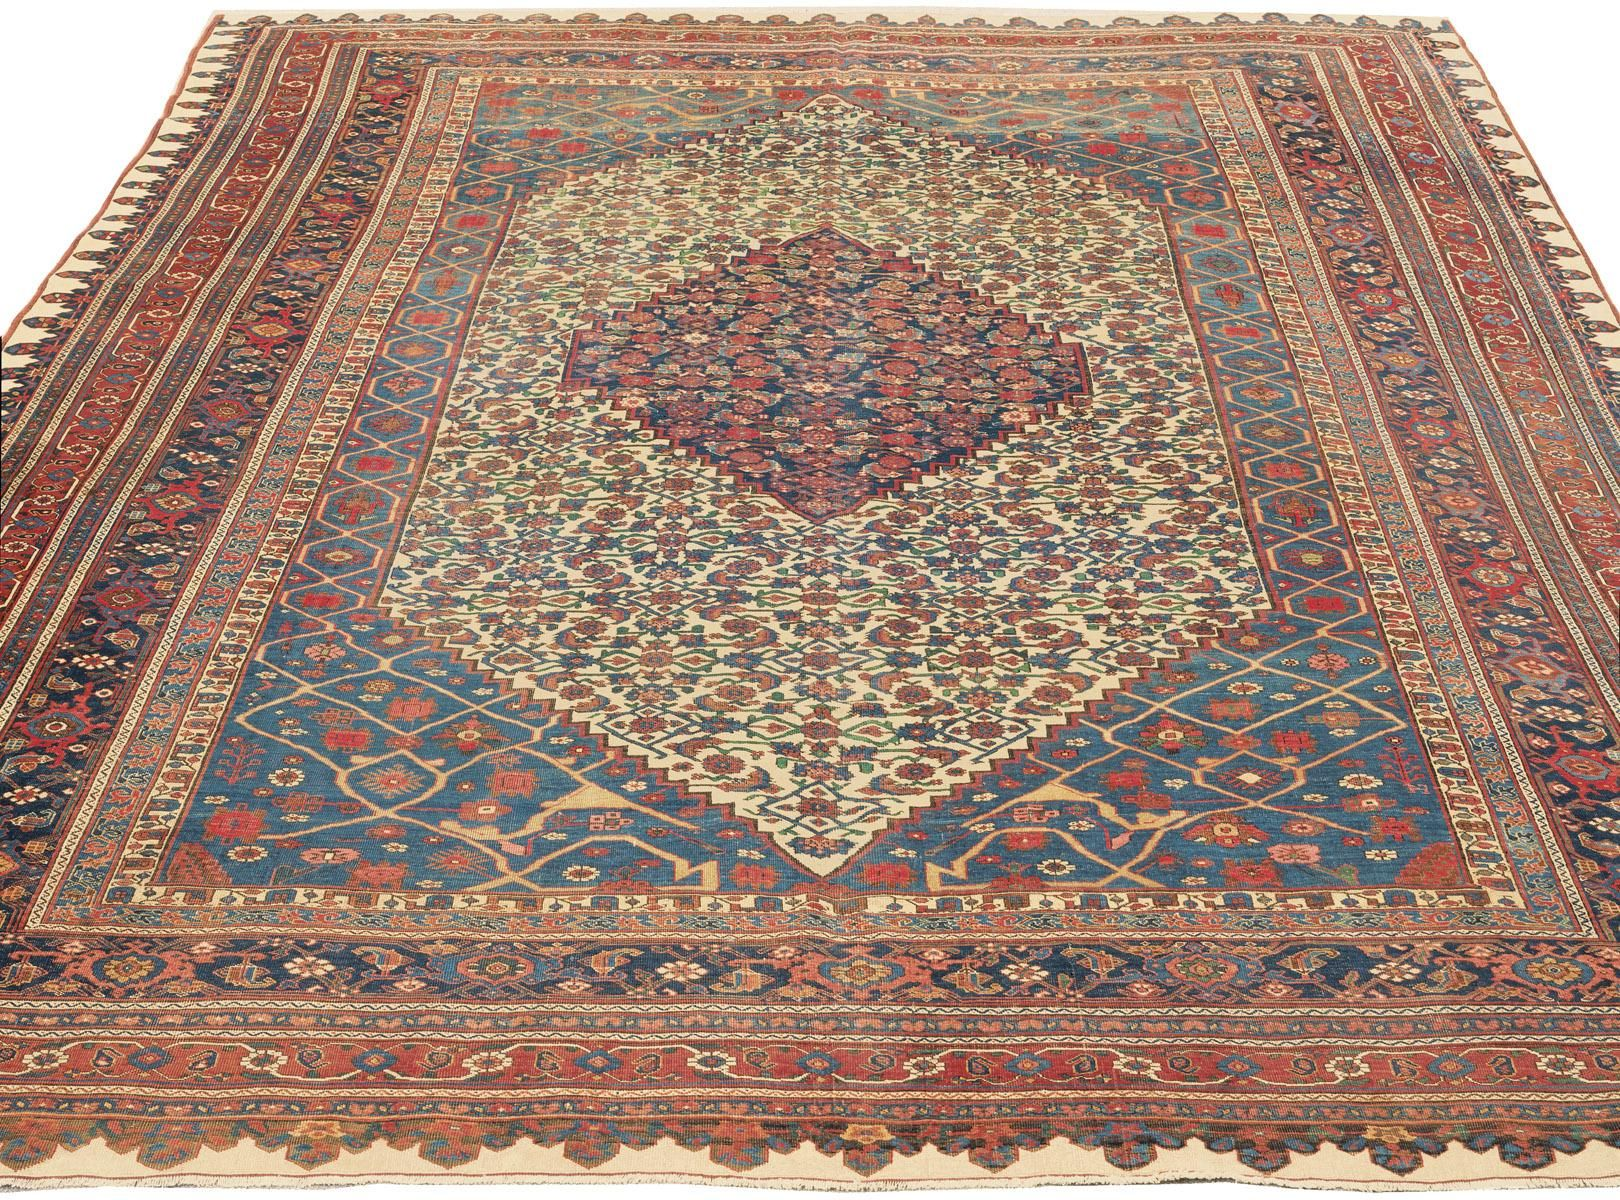 Guide To The Art And Origins Of Antique Persian Bijar Bidjar Rugs Antique Persian Carpet Rugs Claremont Rug Company